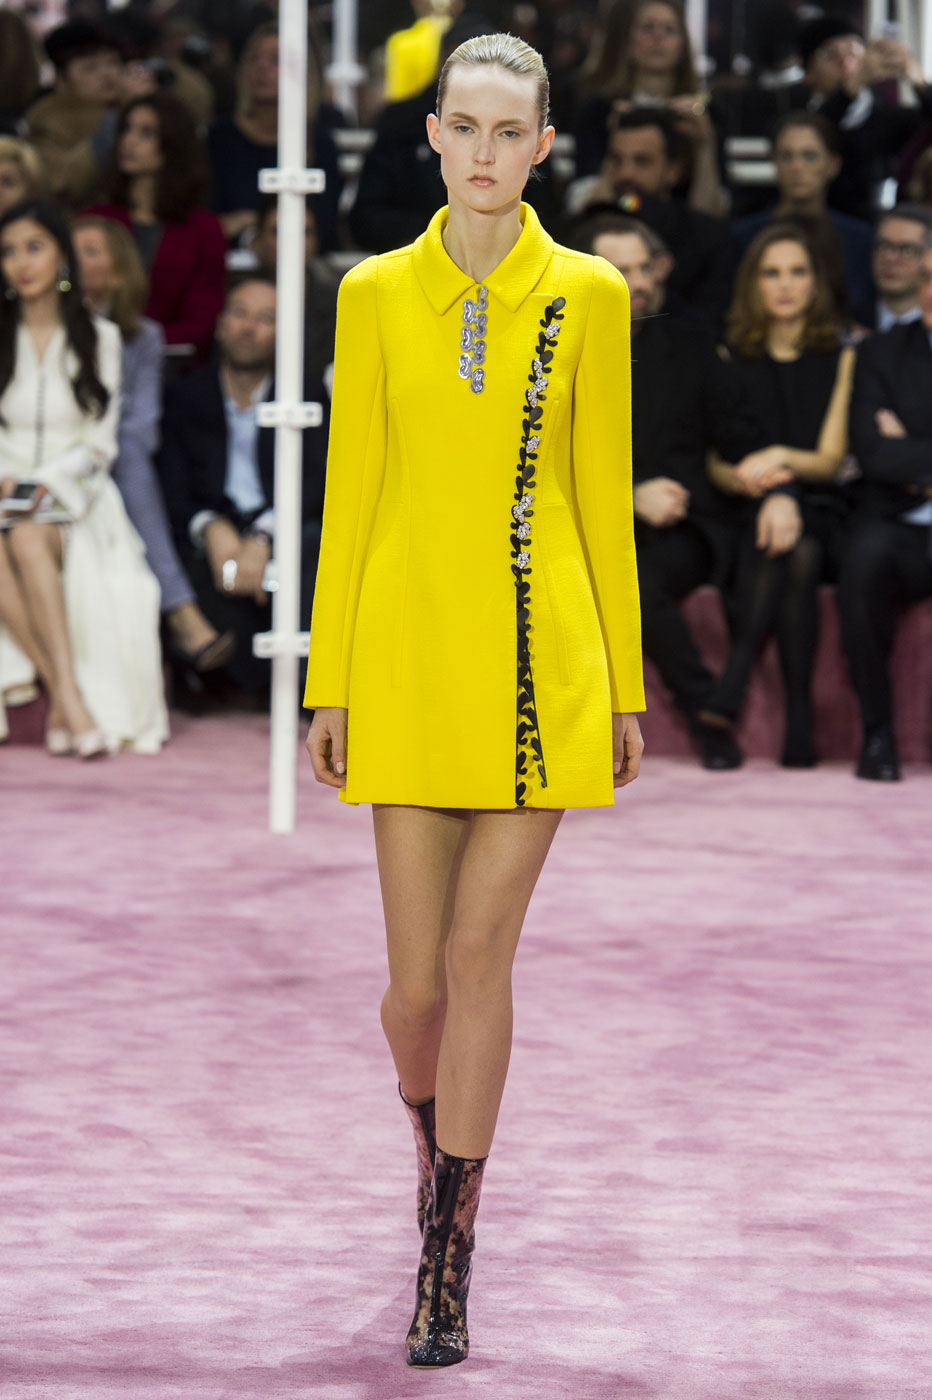 Christian-Dior-fashion-runway-show-haute-couture-paris-spring-summer-2015-the-impression-096